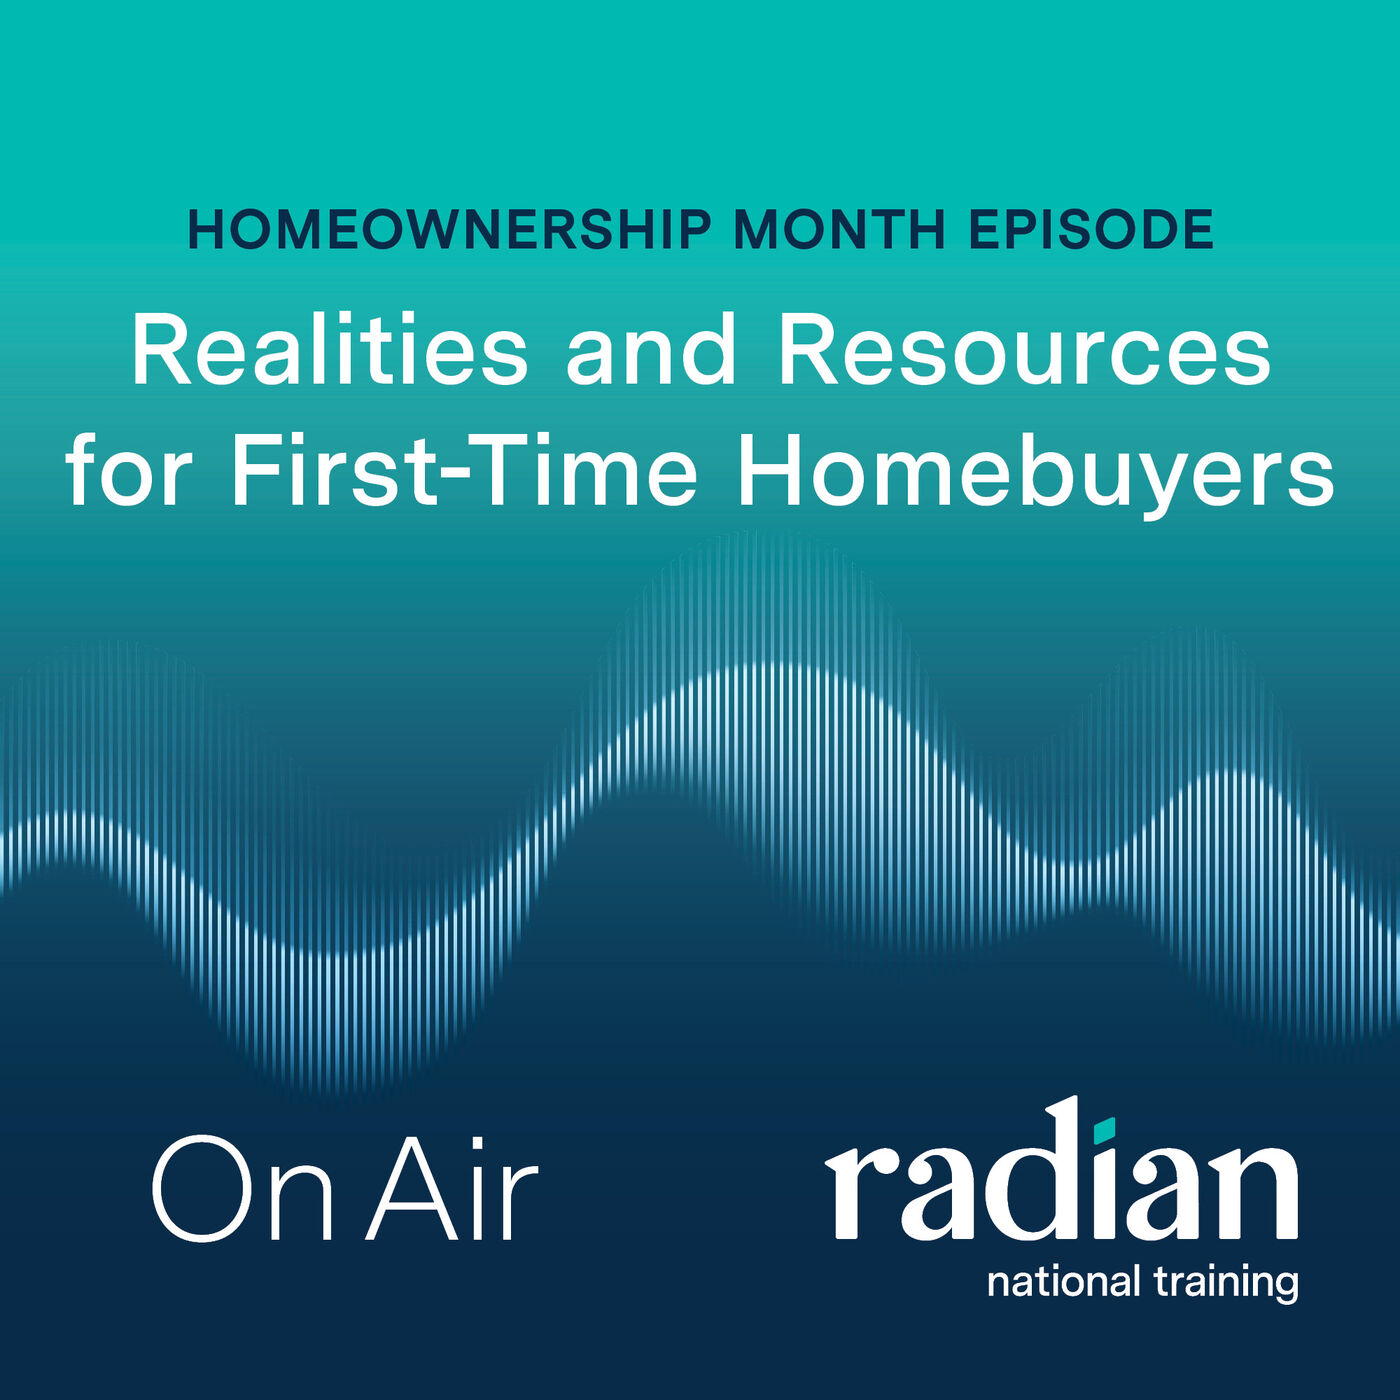 Realities & Resources for First-Time Homebuyers